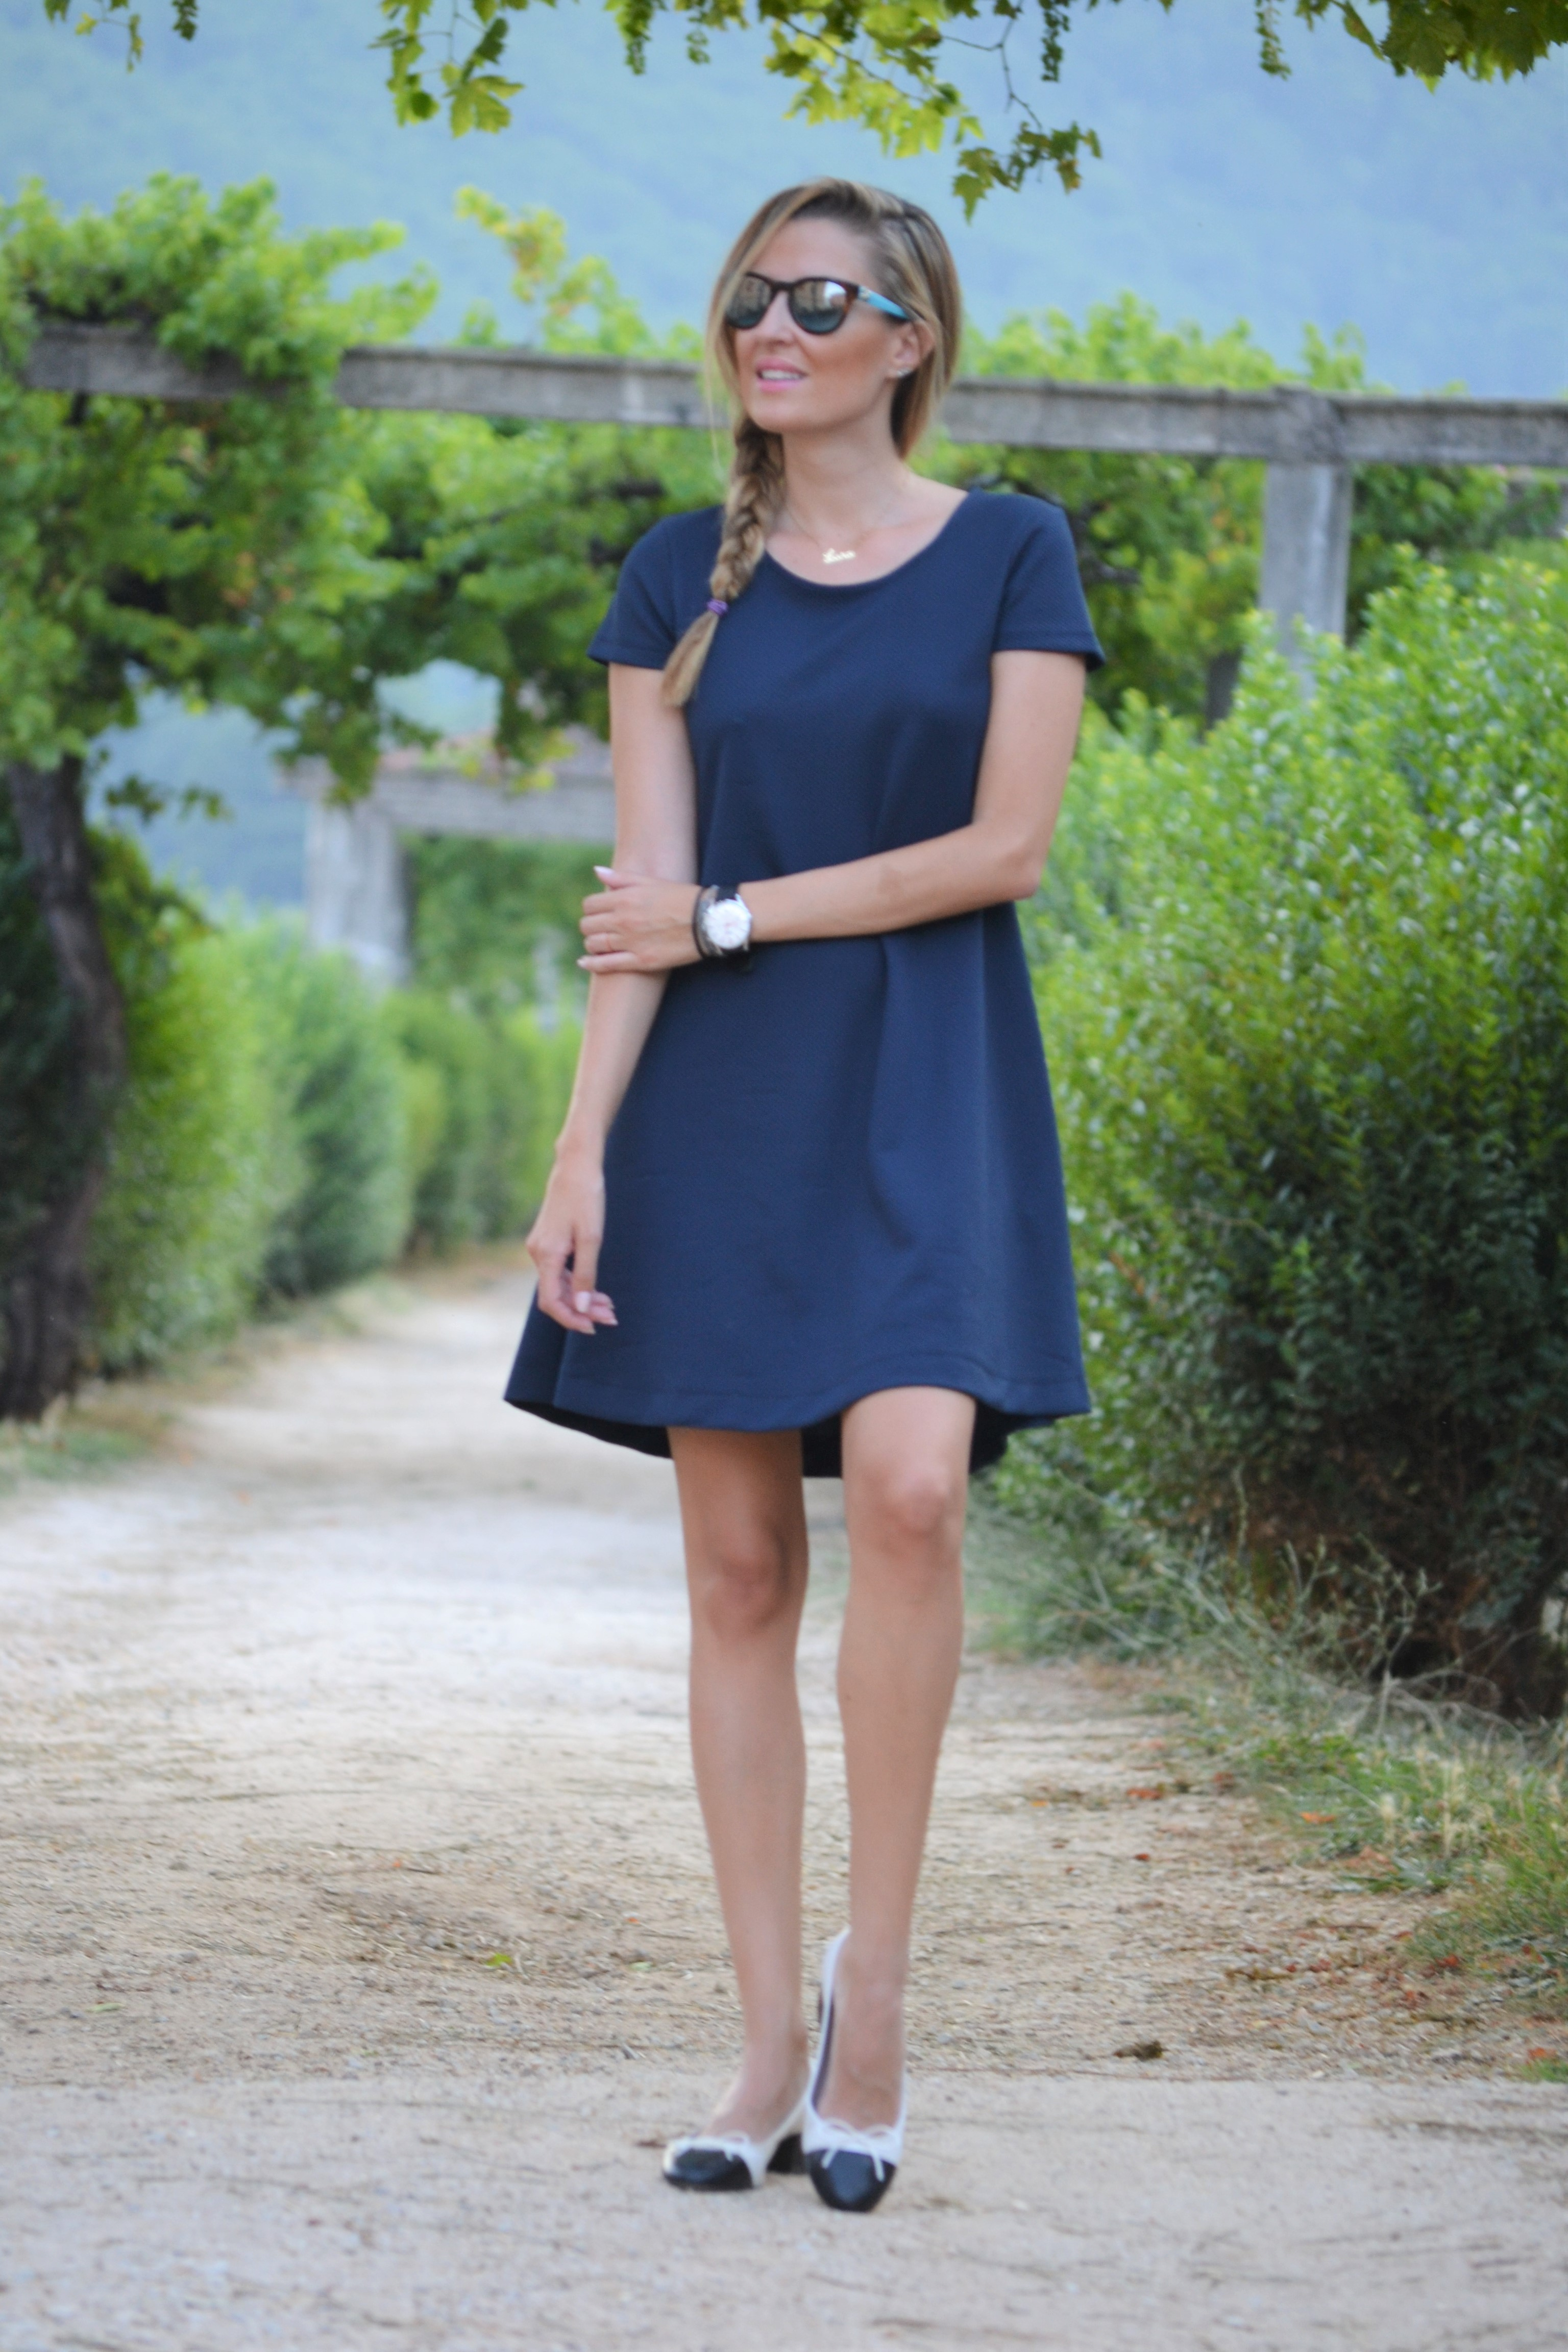 Little_Blue_Dress_Lara_Martin_Gilarranz_Bymyheels (2)